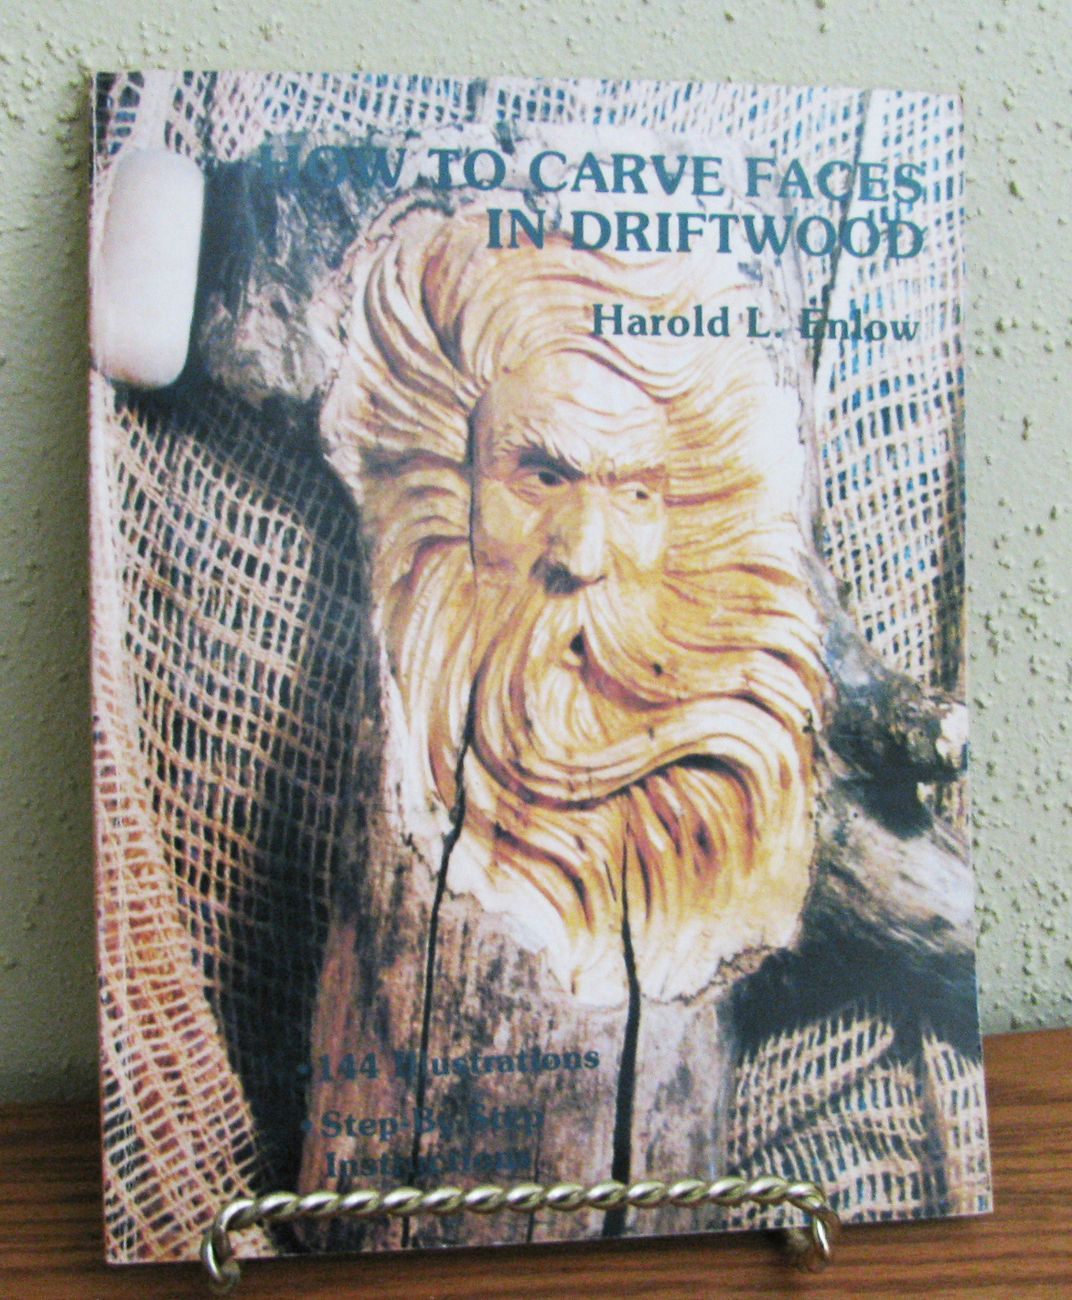 How To Carve Faces In Driftwood